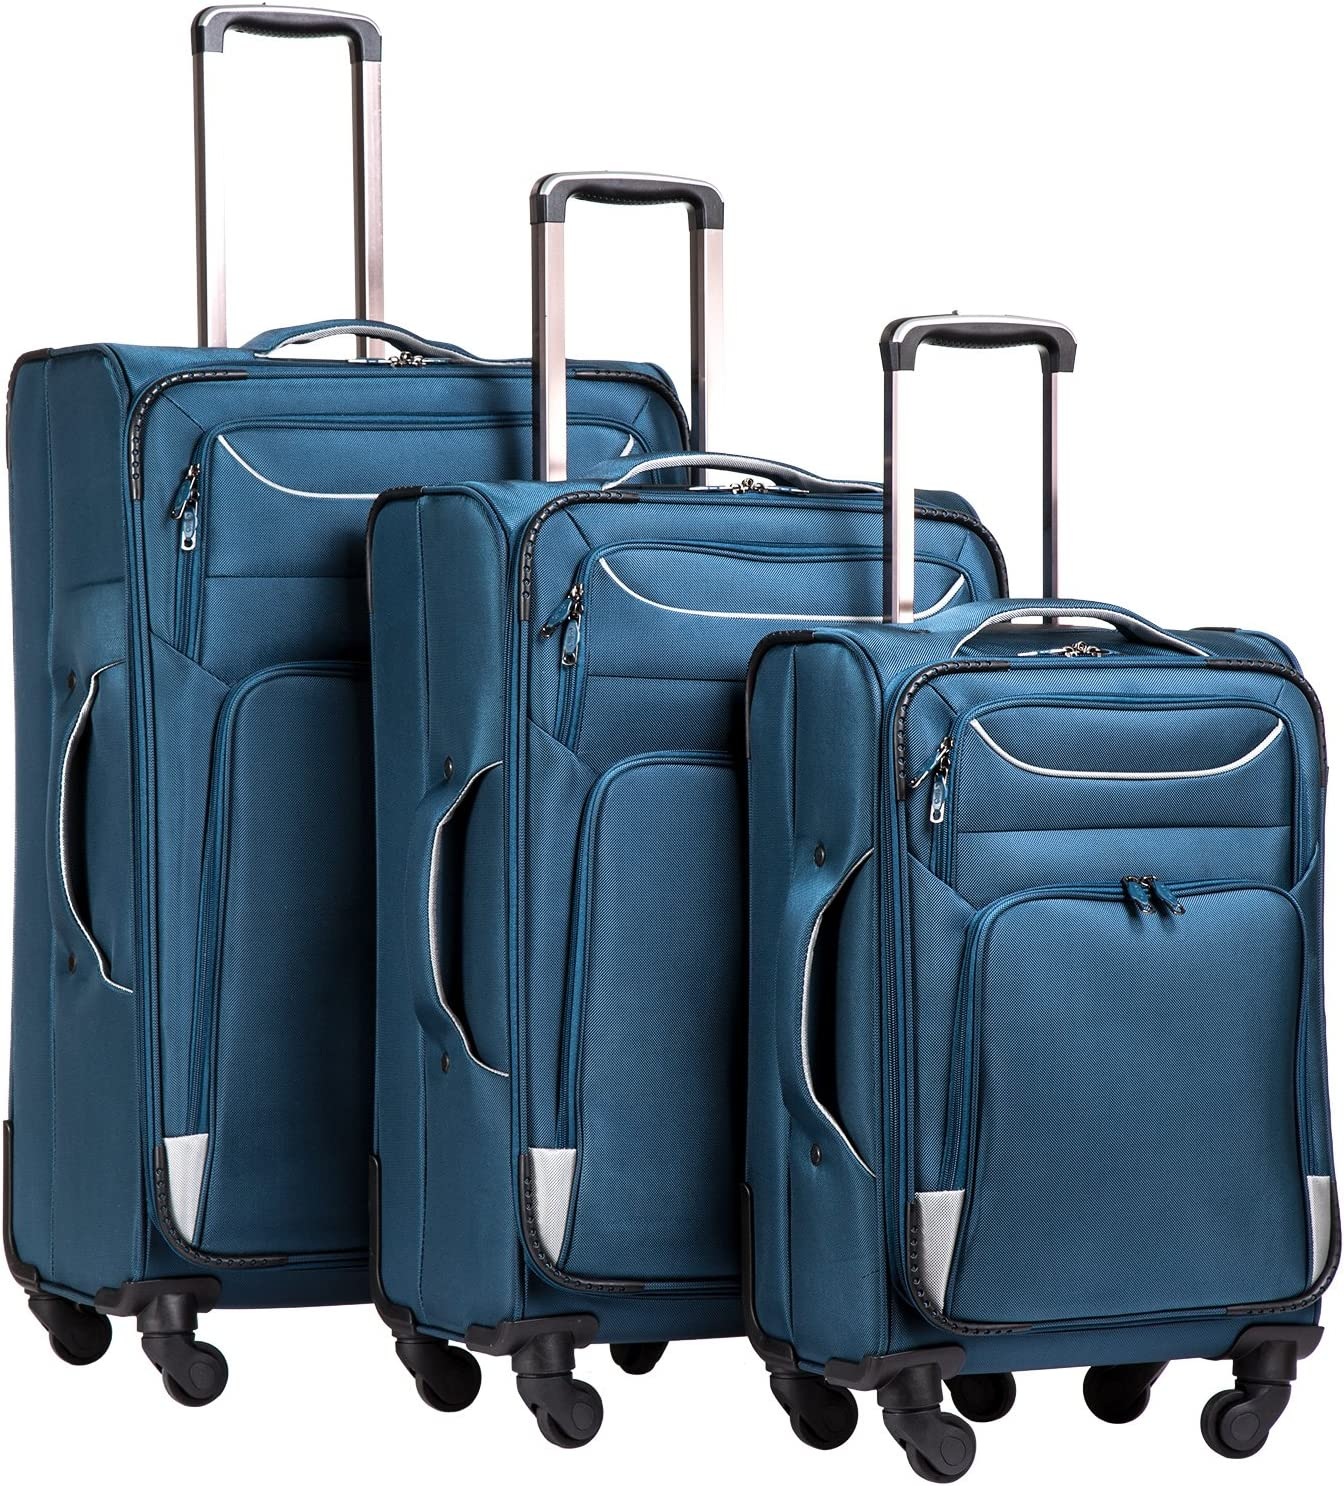 Top 7 Best Lightweight Luggage for International Travel 3